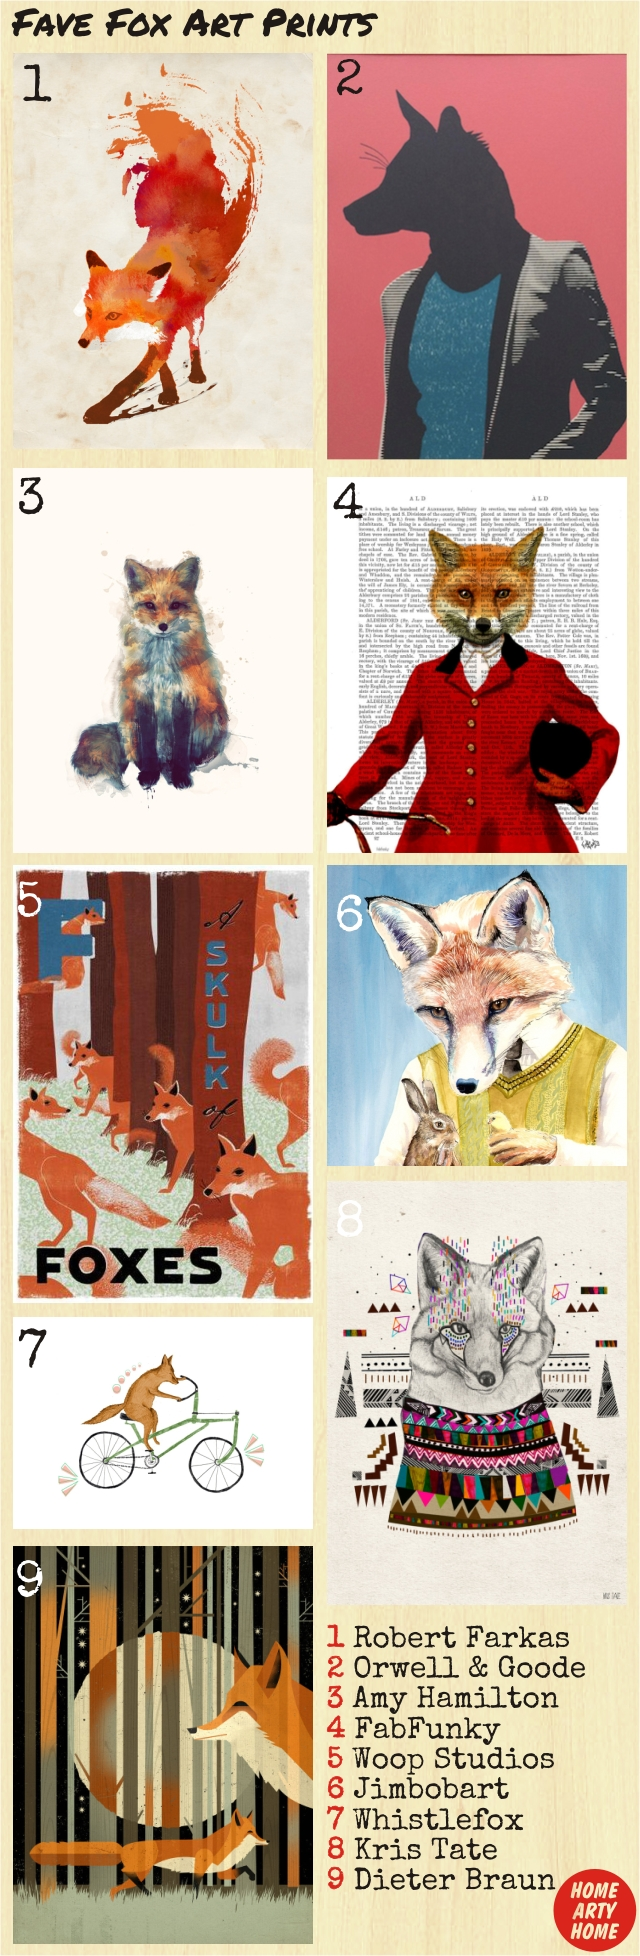 Foxy art prints homeartyhome